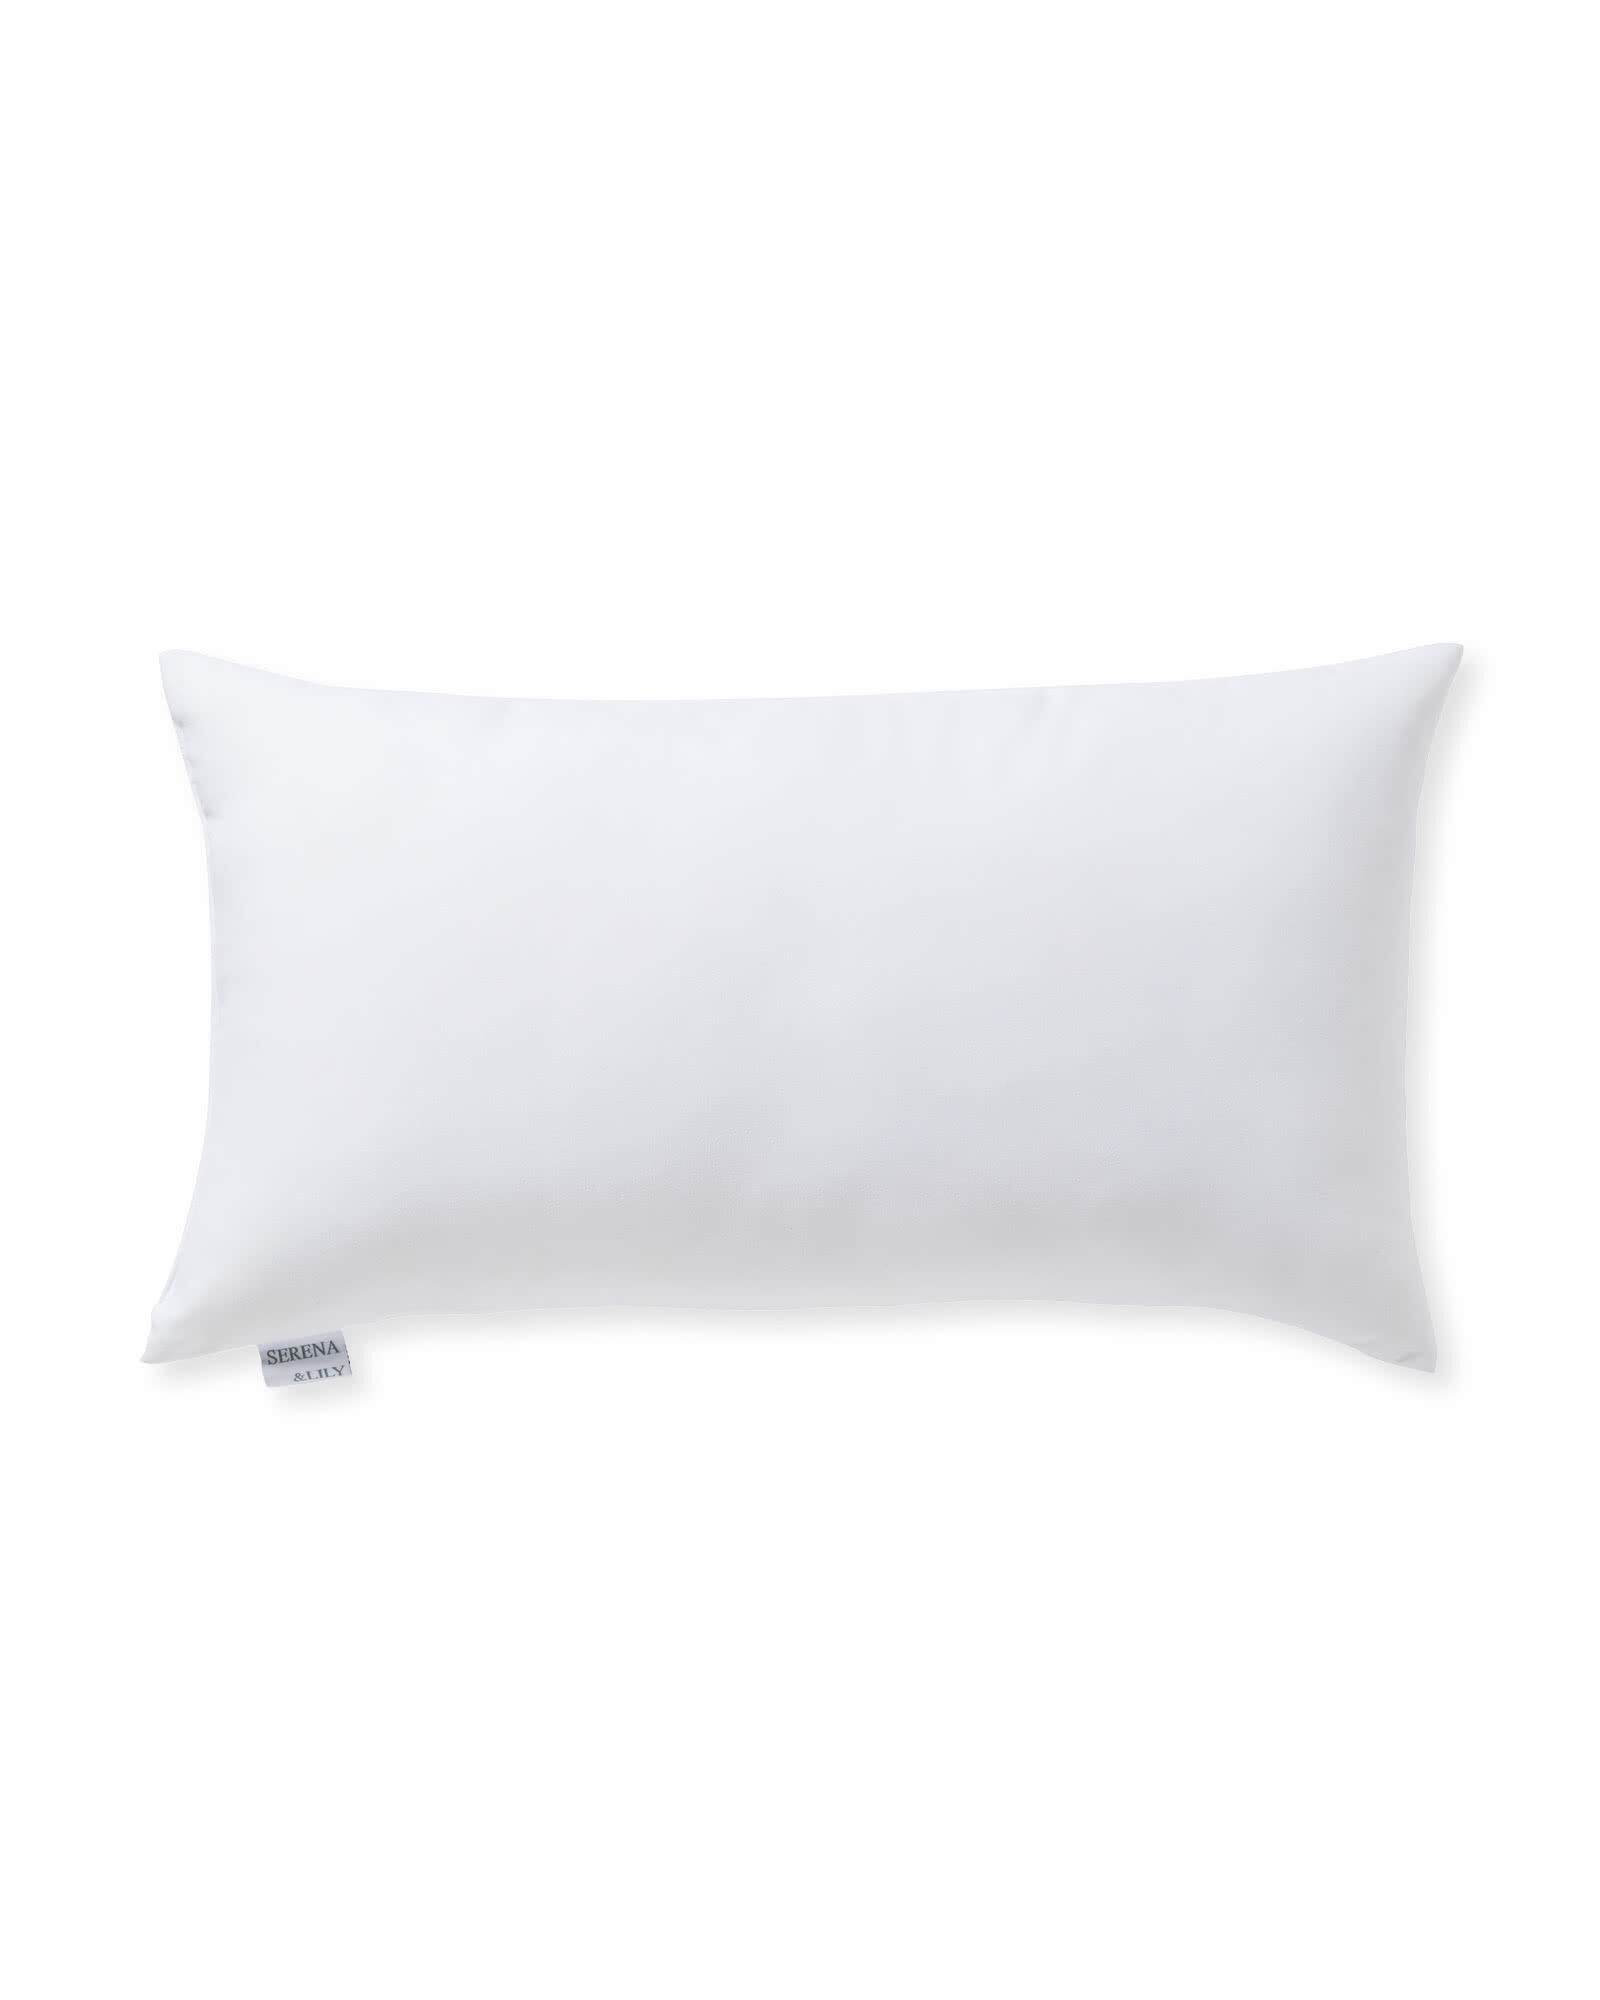 Outdoor Pillow Inserts,